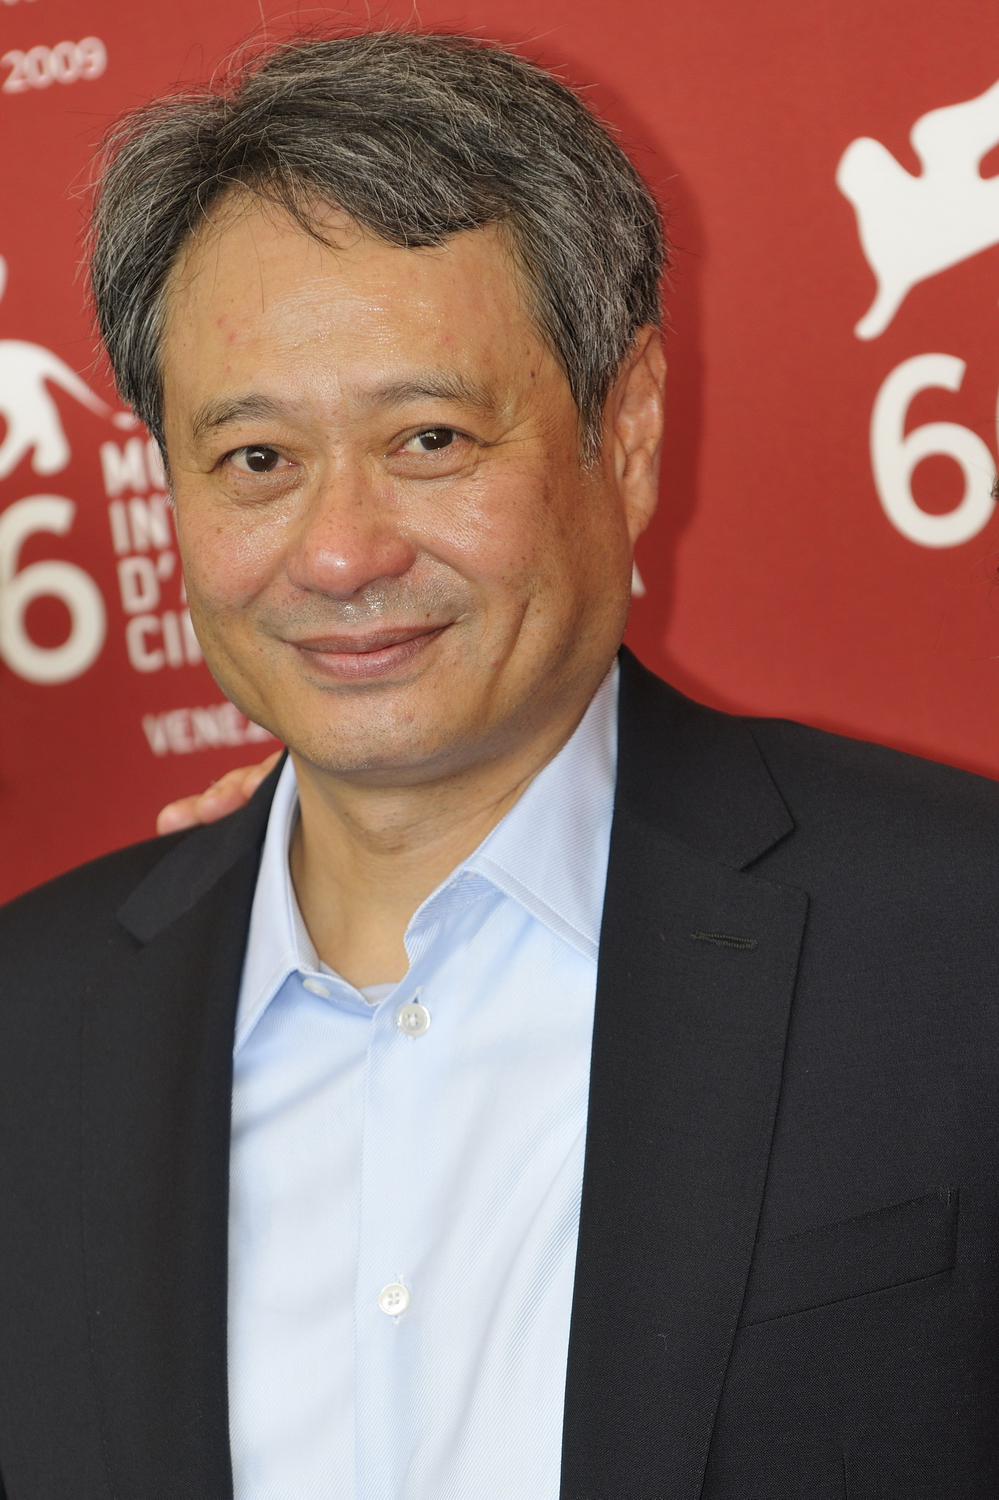 The 63-year old son of father Sheng Lee and mother Yum Lee Ang Lee in 2018 photo. Ang Lee earned a  million dollar salary - leaving the net worth at 32 million in 2018